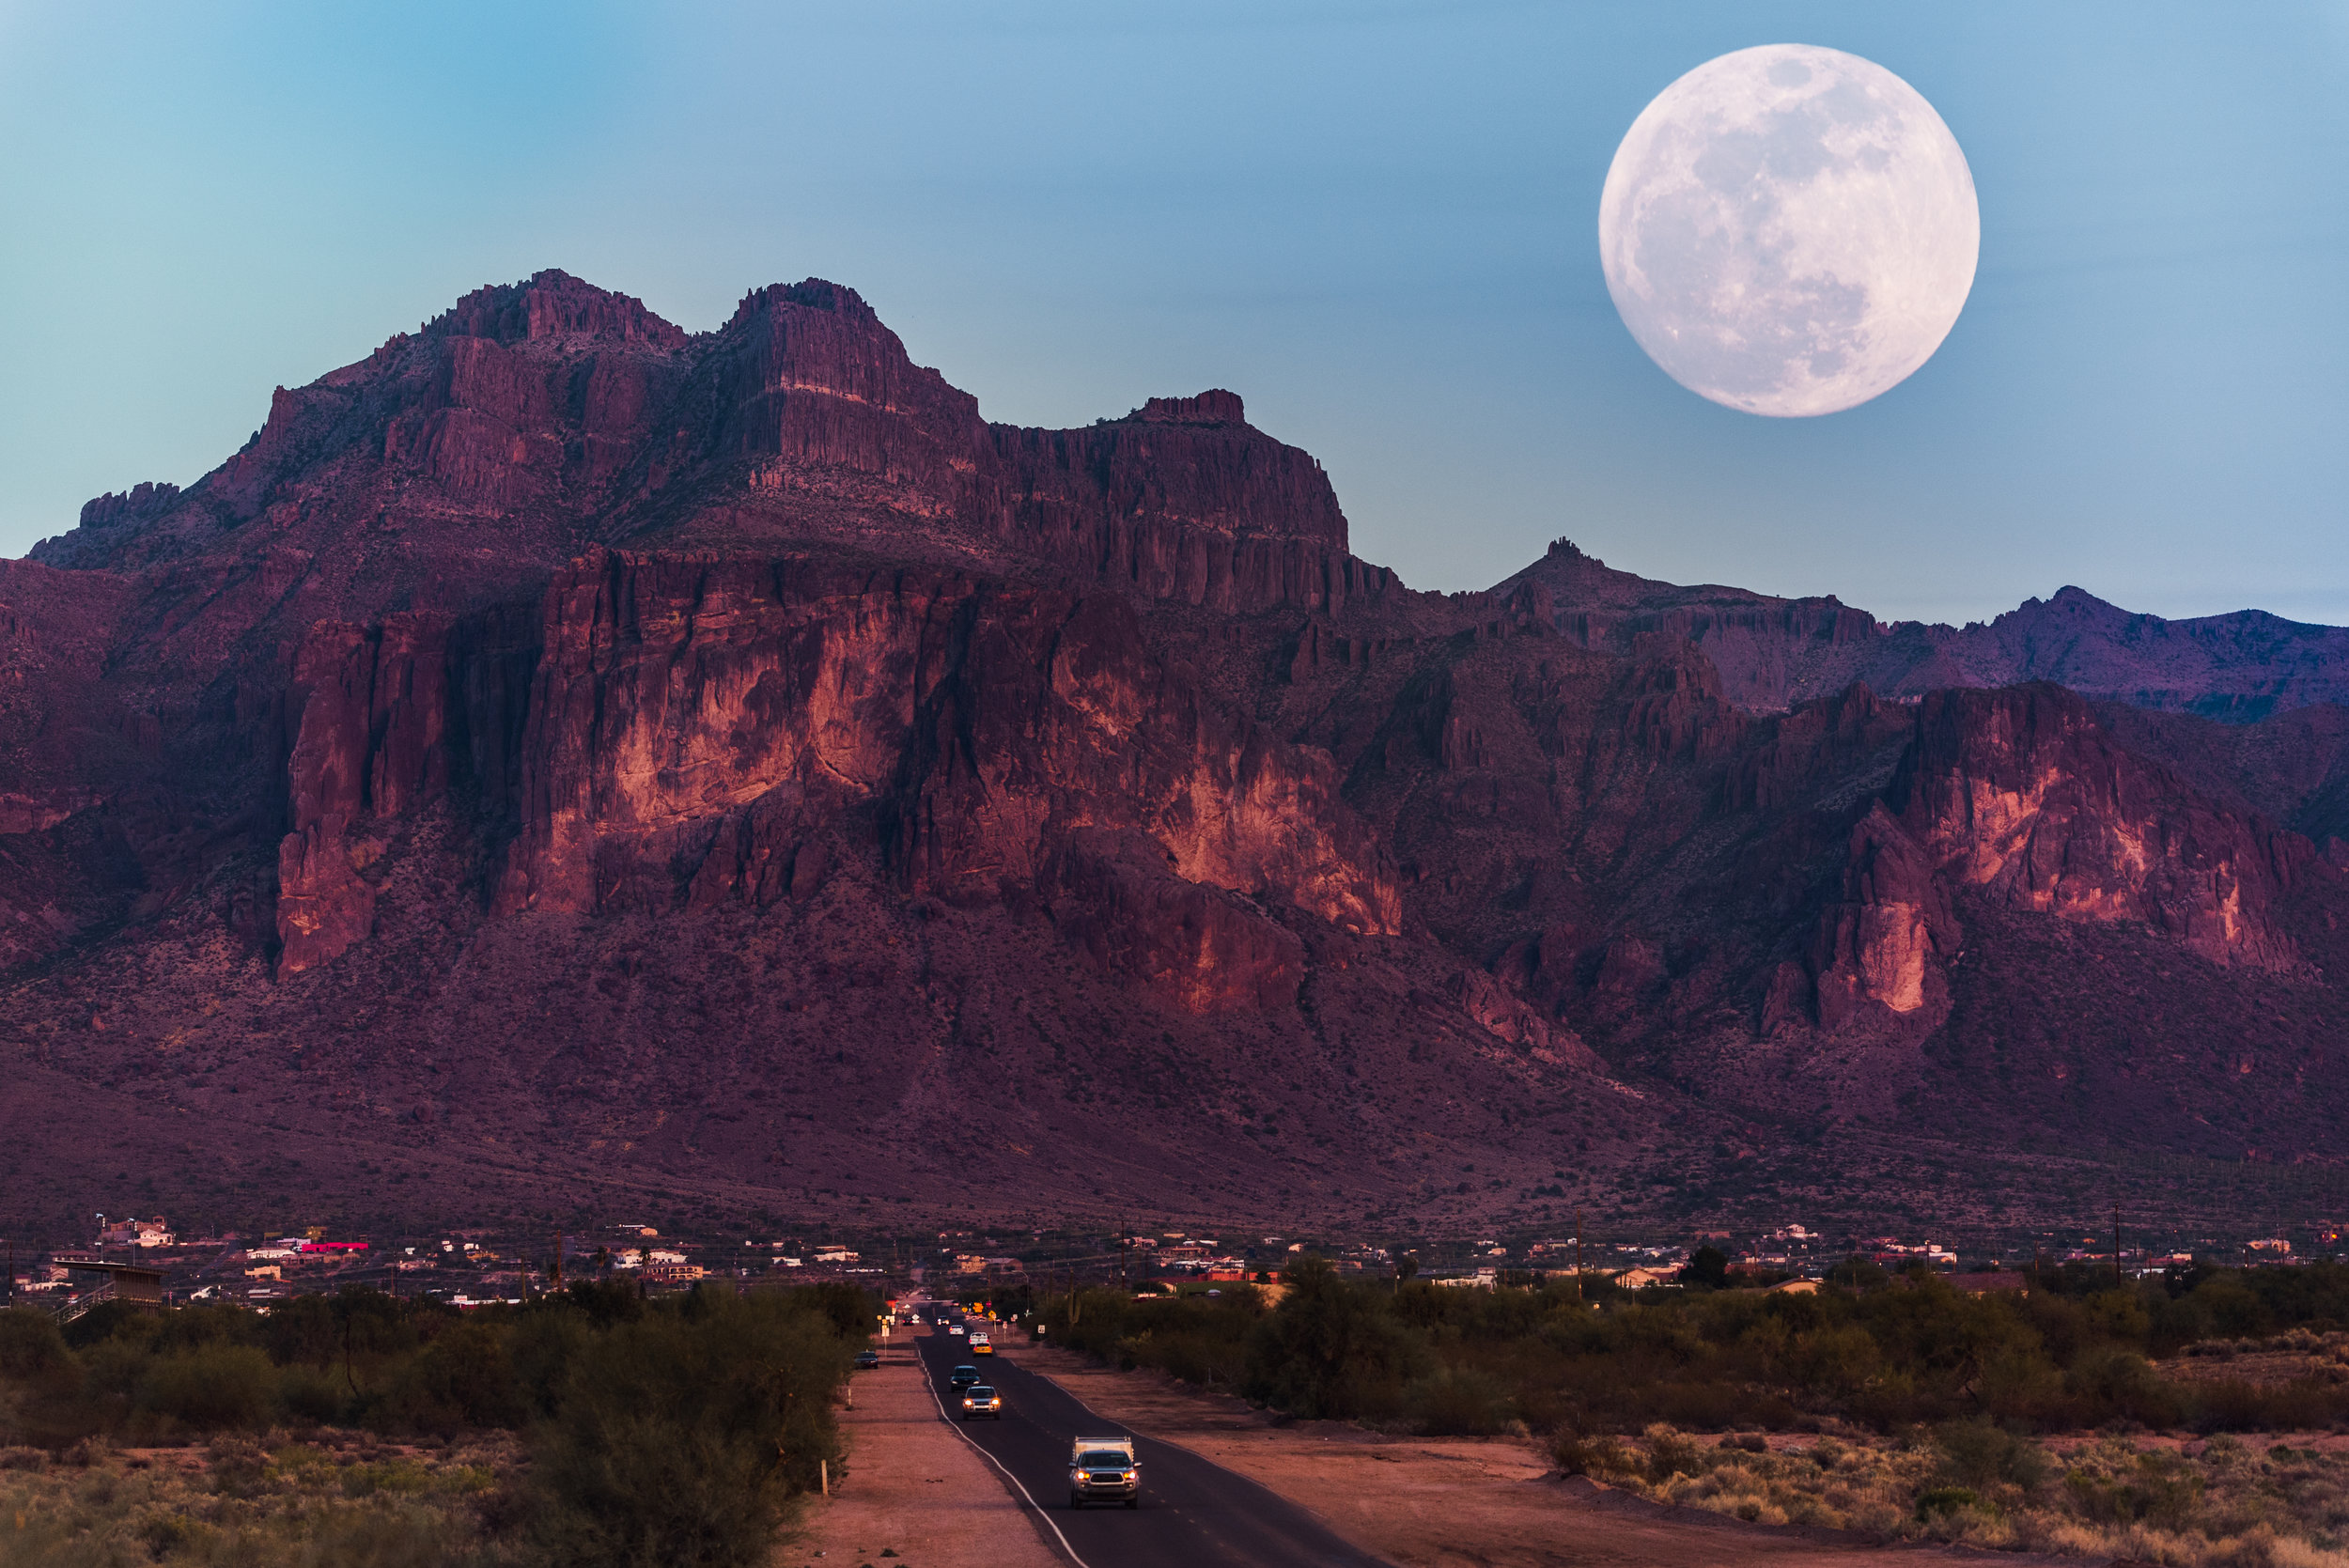 A full moon rising over Superstition Mountains, Arizona, USA